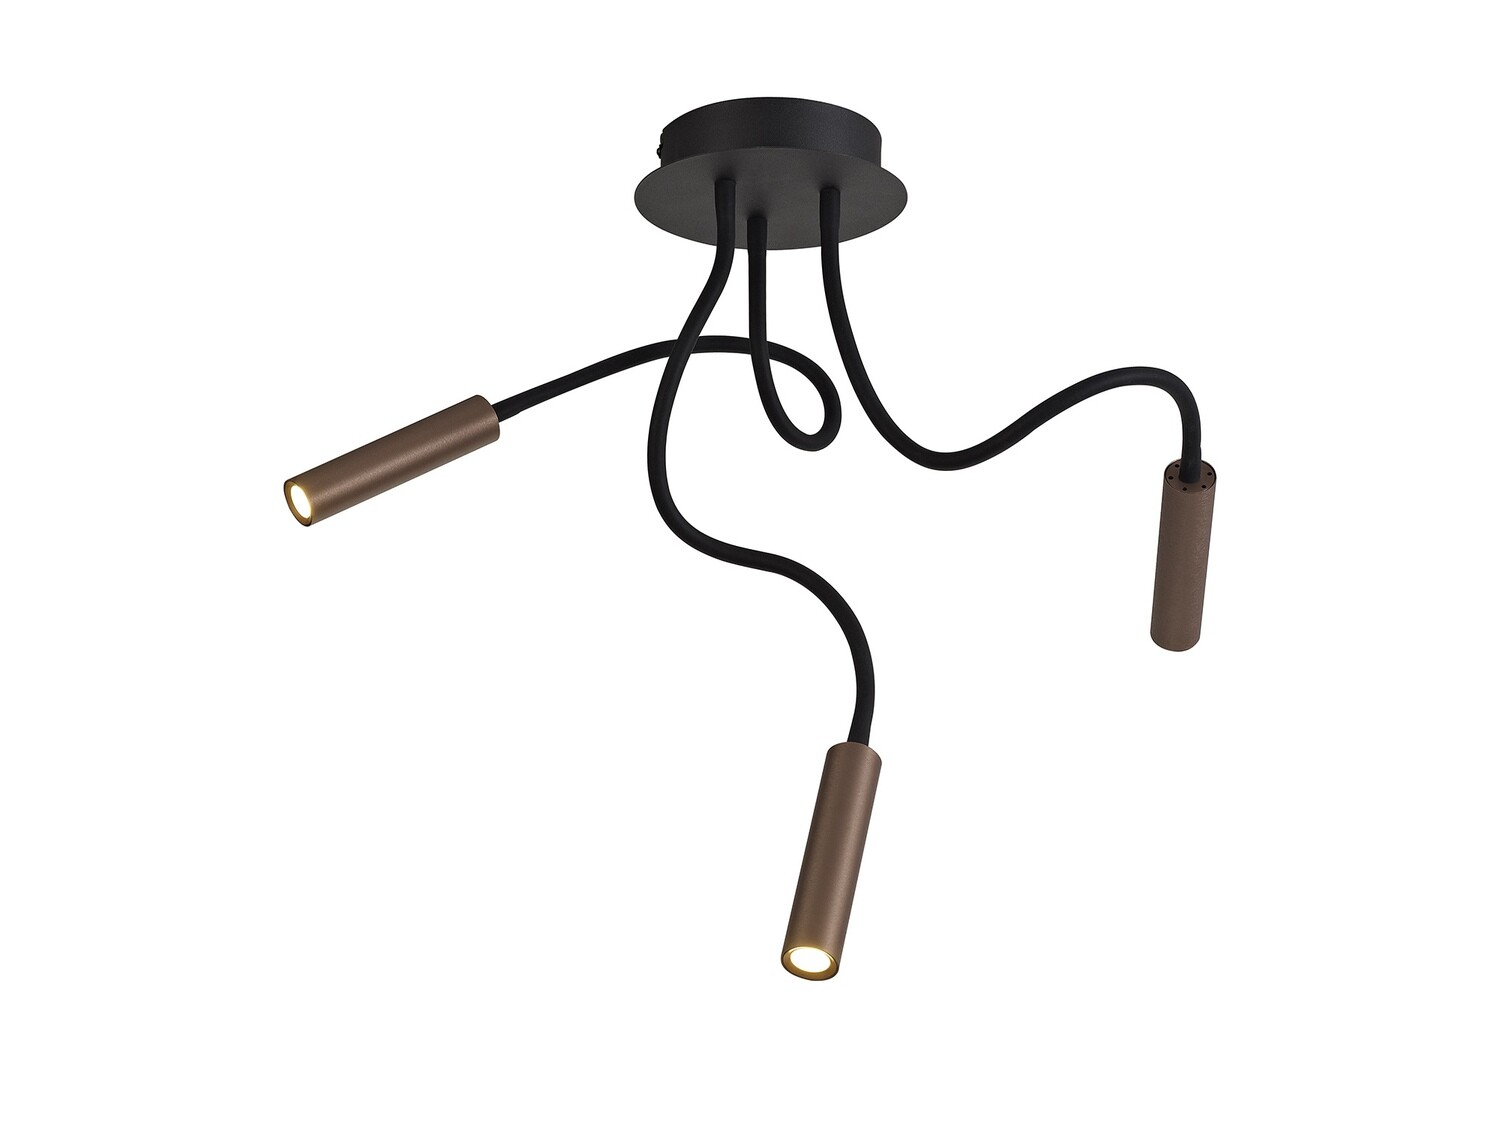 Stanie Ceiling, 3 Light Adjustable Arms, 3 x 5W LED Dimmable, 3000K, 930lm, Black/Satin Copper